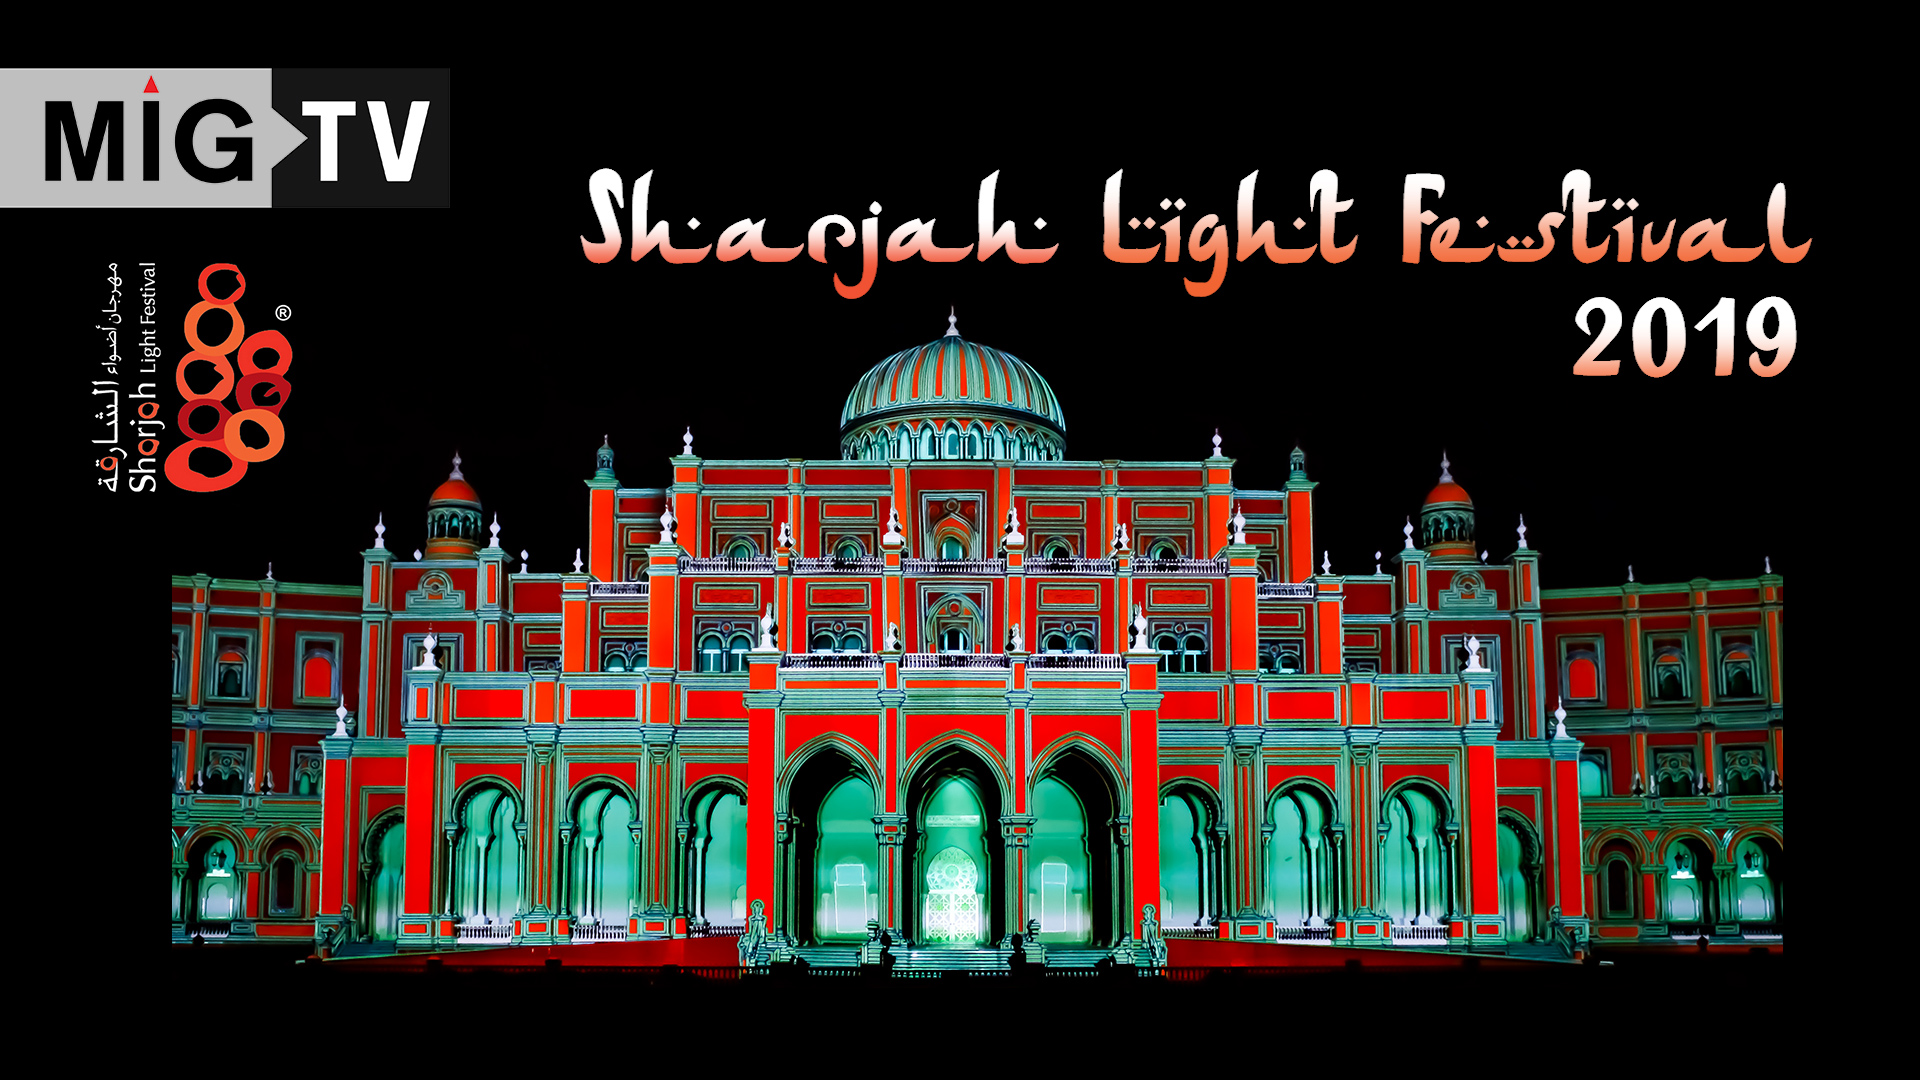 Sharjah Light Festival 2019